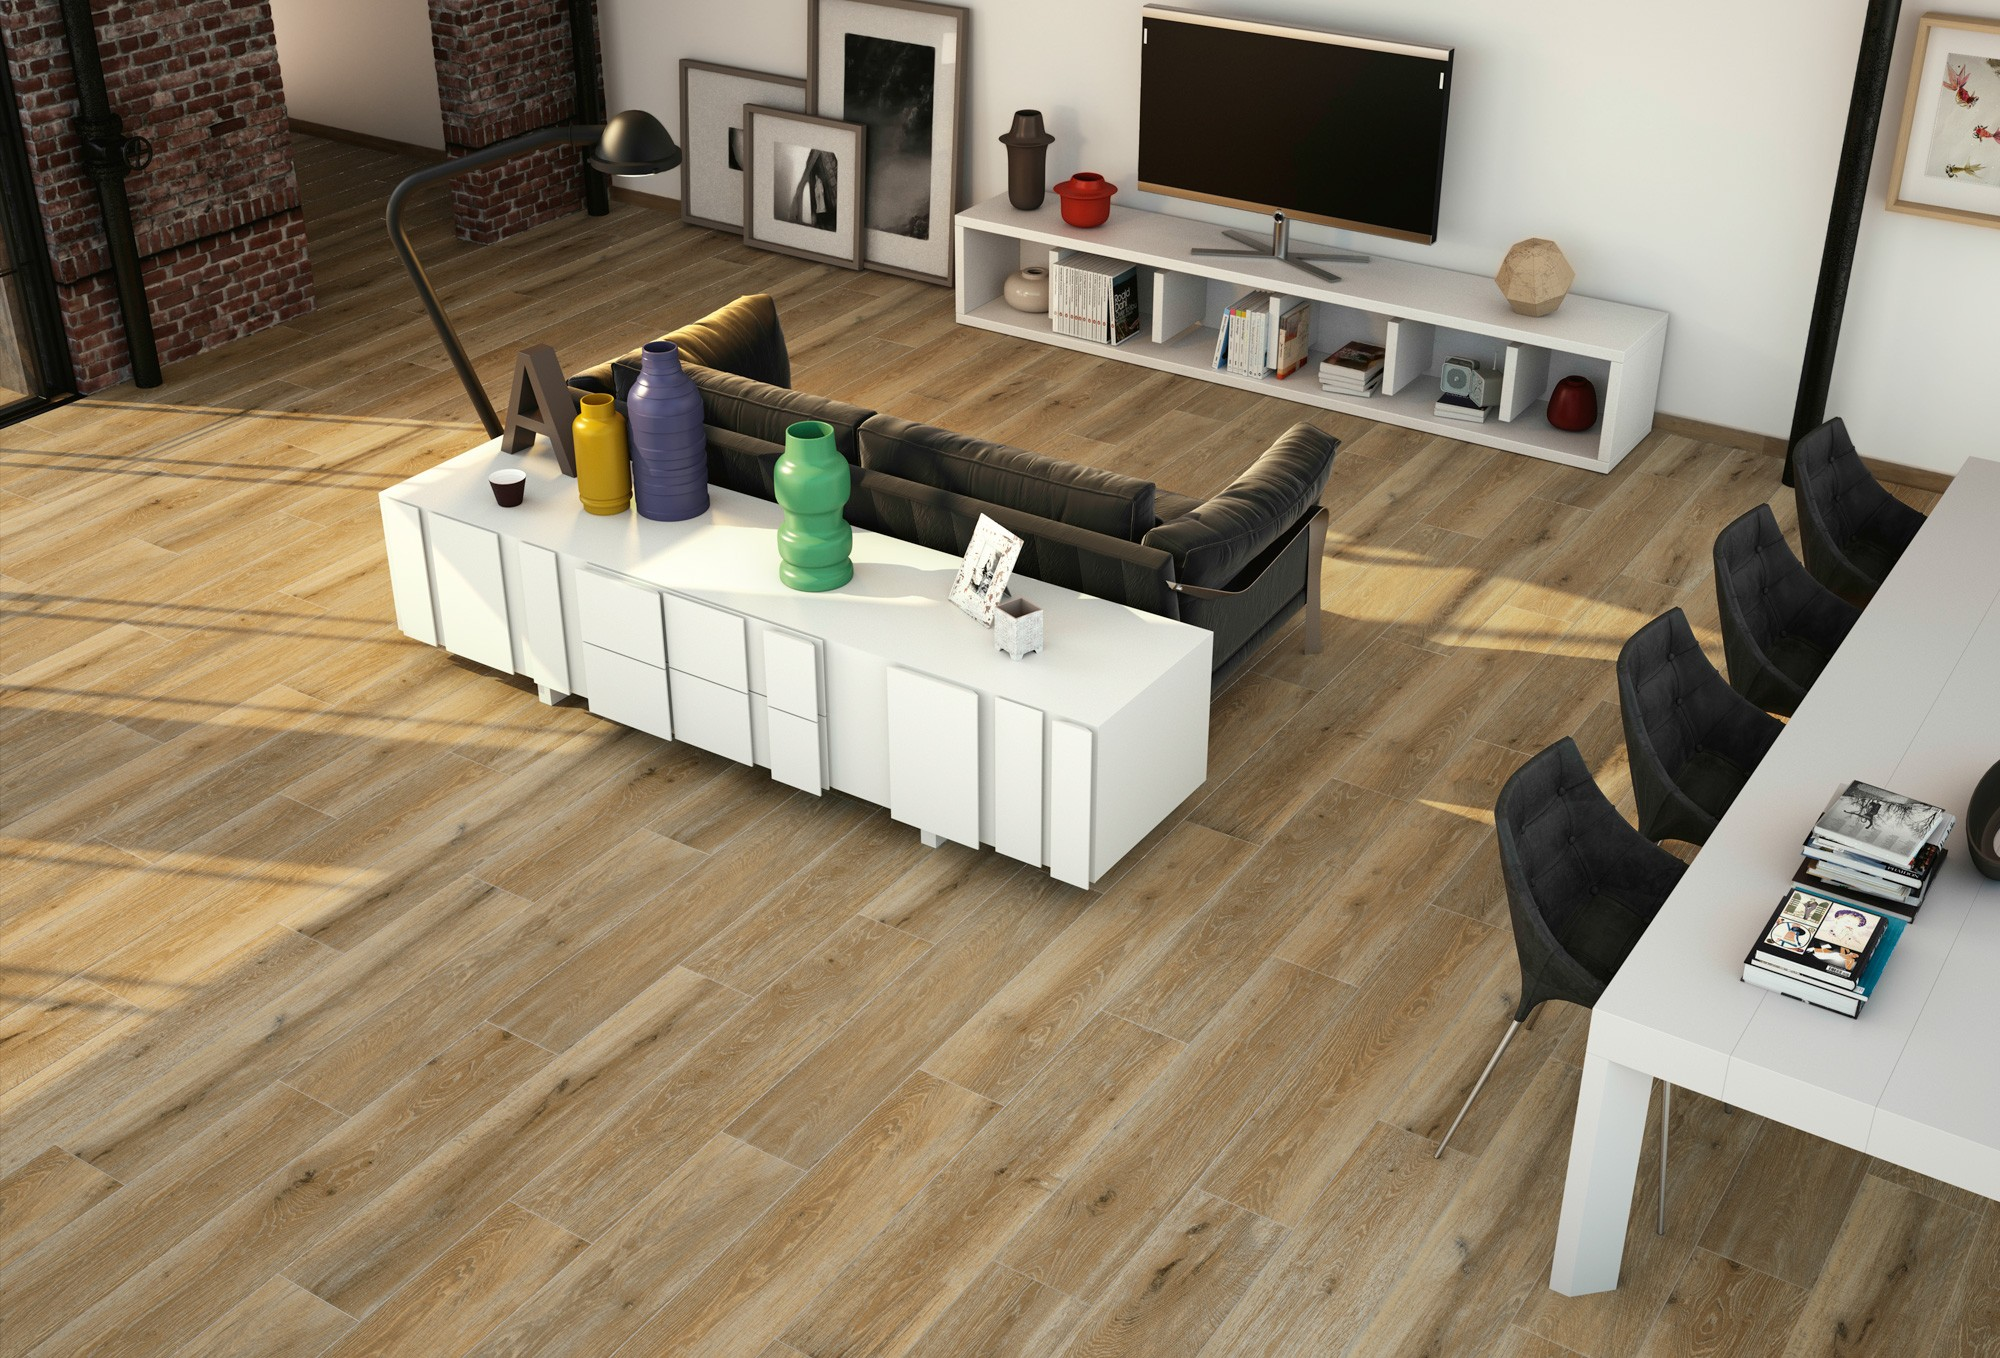 Amb 1316 Roble - Serie 1316